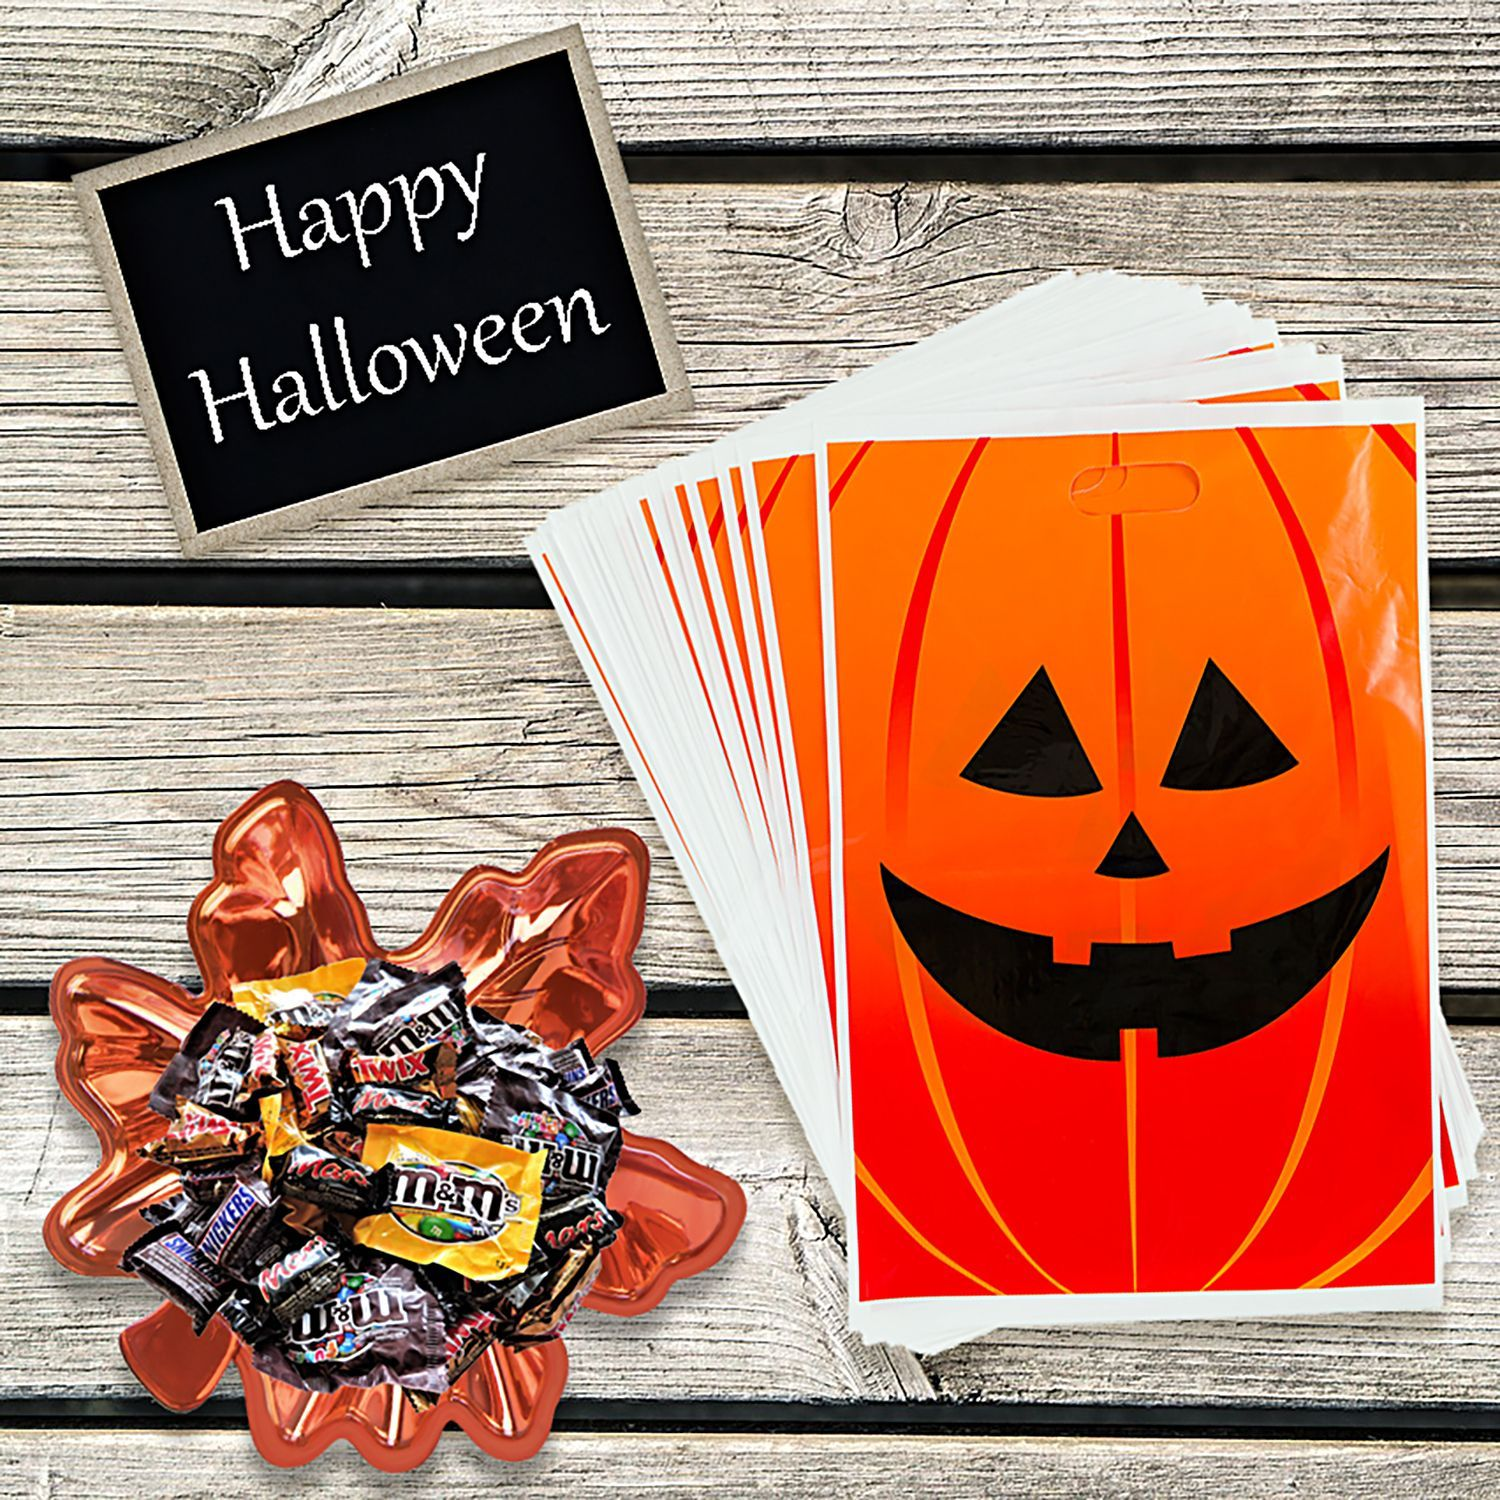 Halloween is a few days away! Use these goody bags for